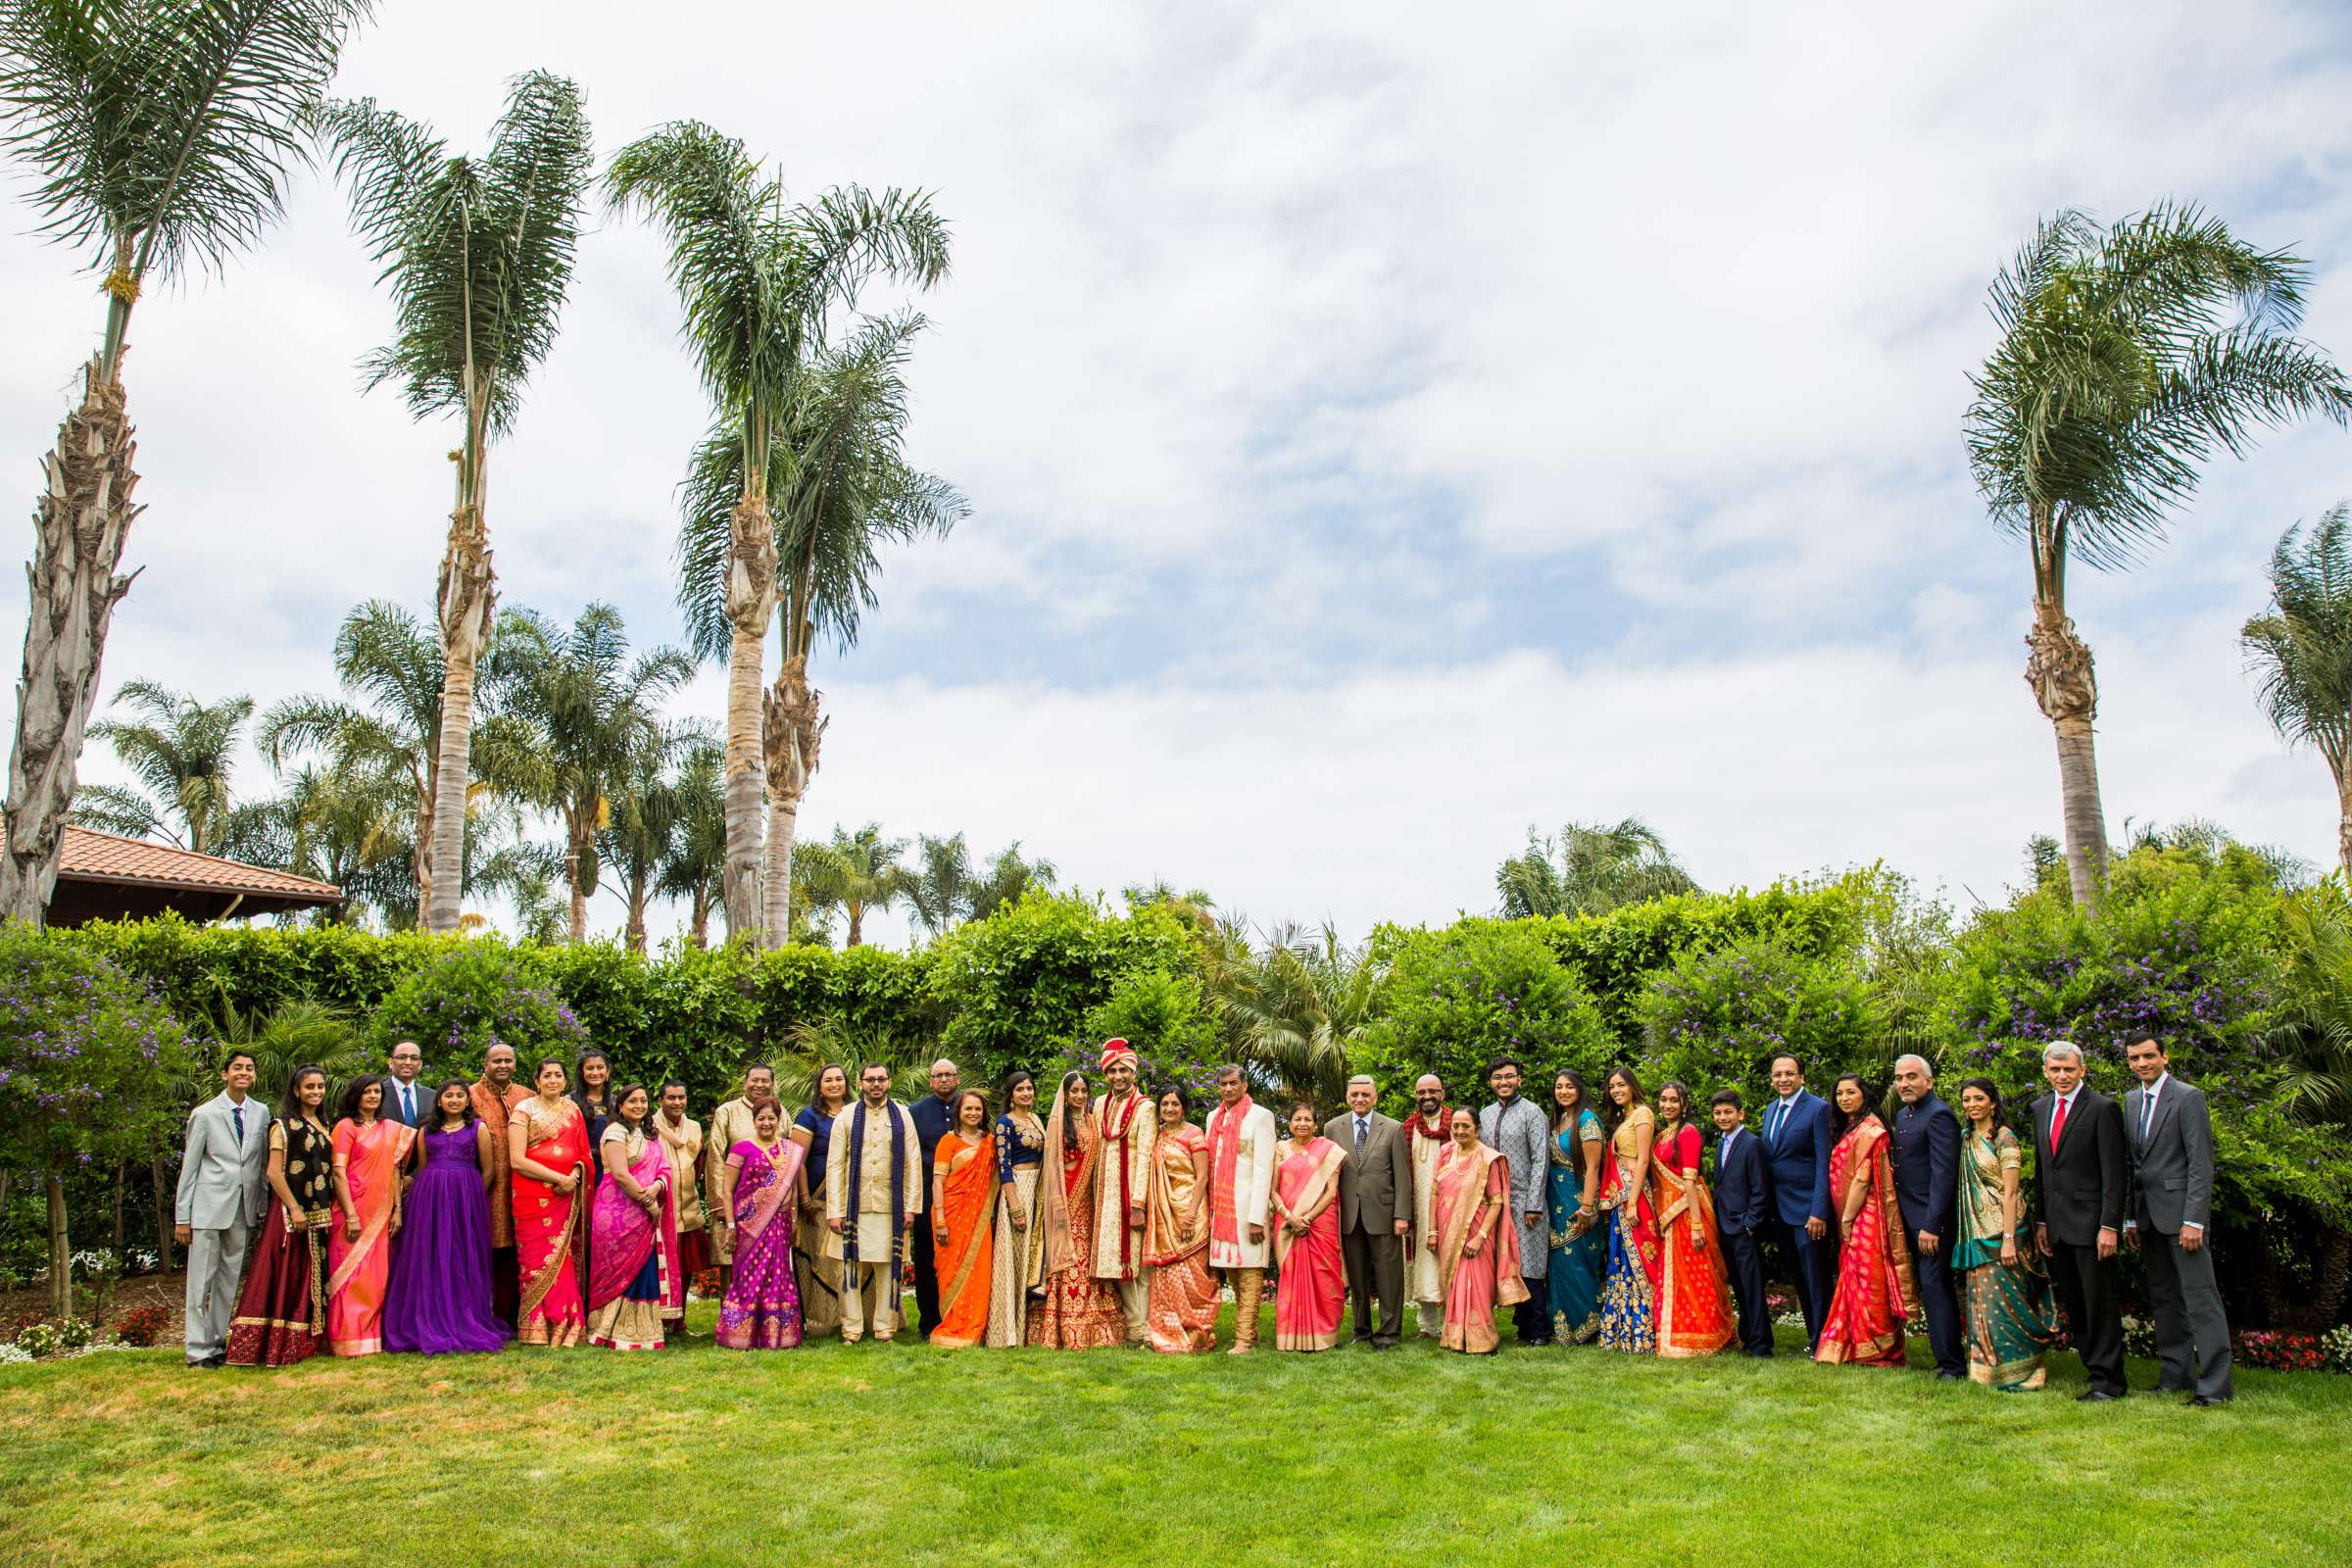 The Westin Carlsbad Resort and Spa Wedding coordinated by Shilpa Patel Events, Ami and Amit Wedding Photo #160 by True Photography